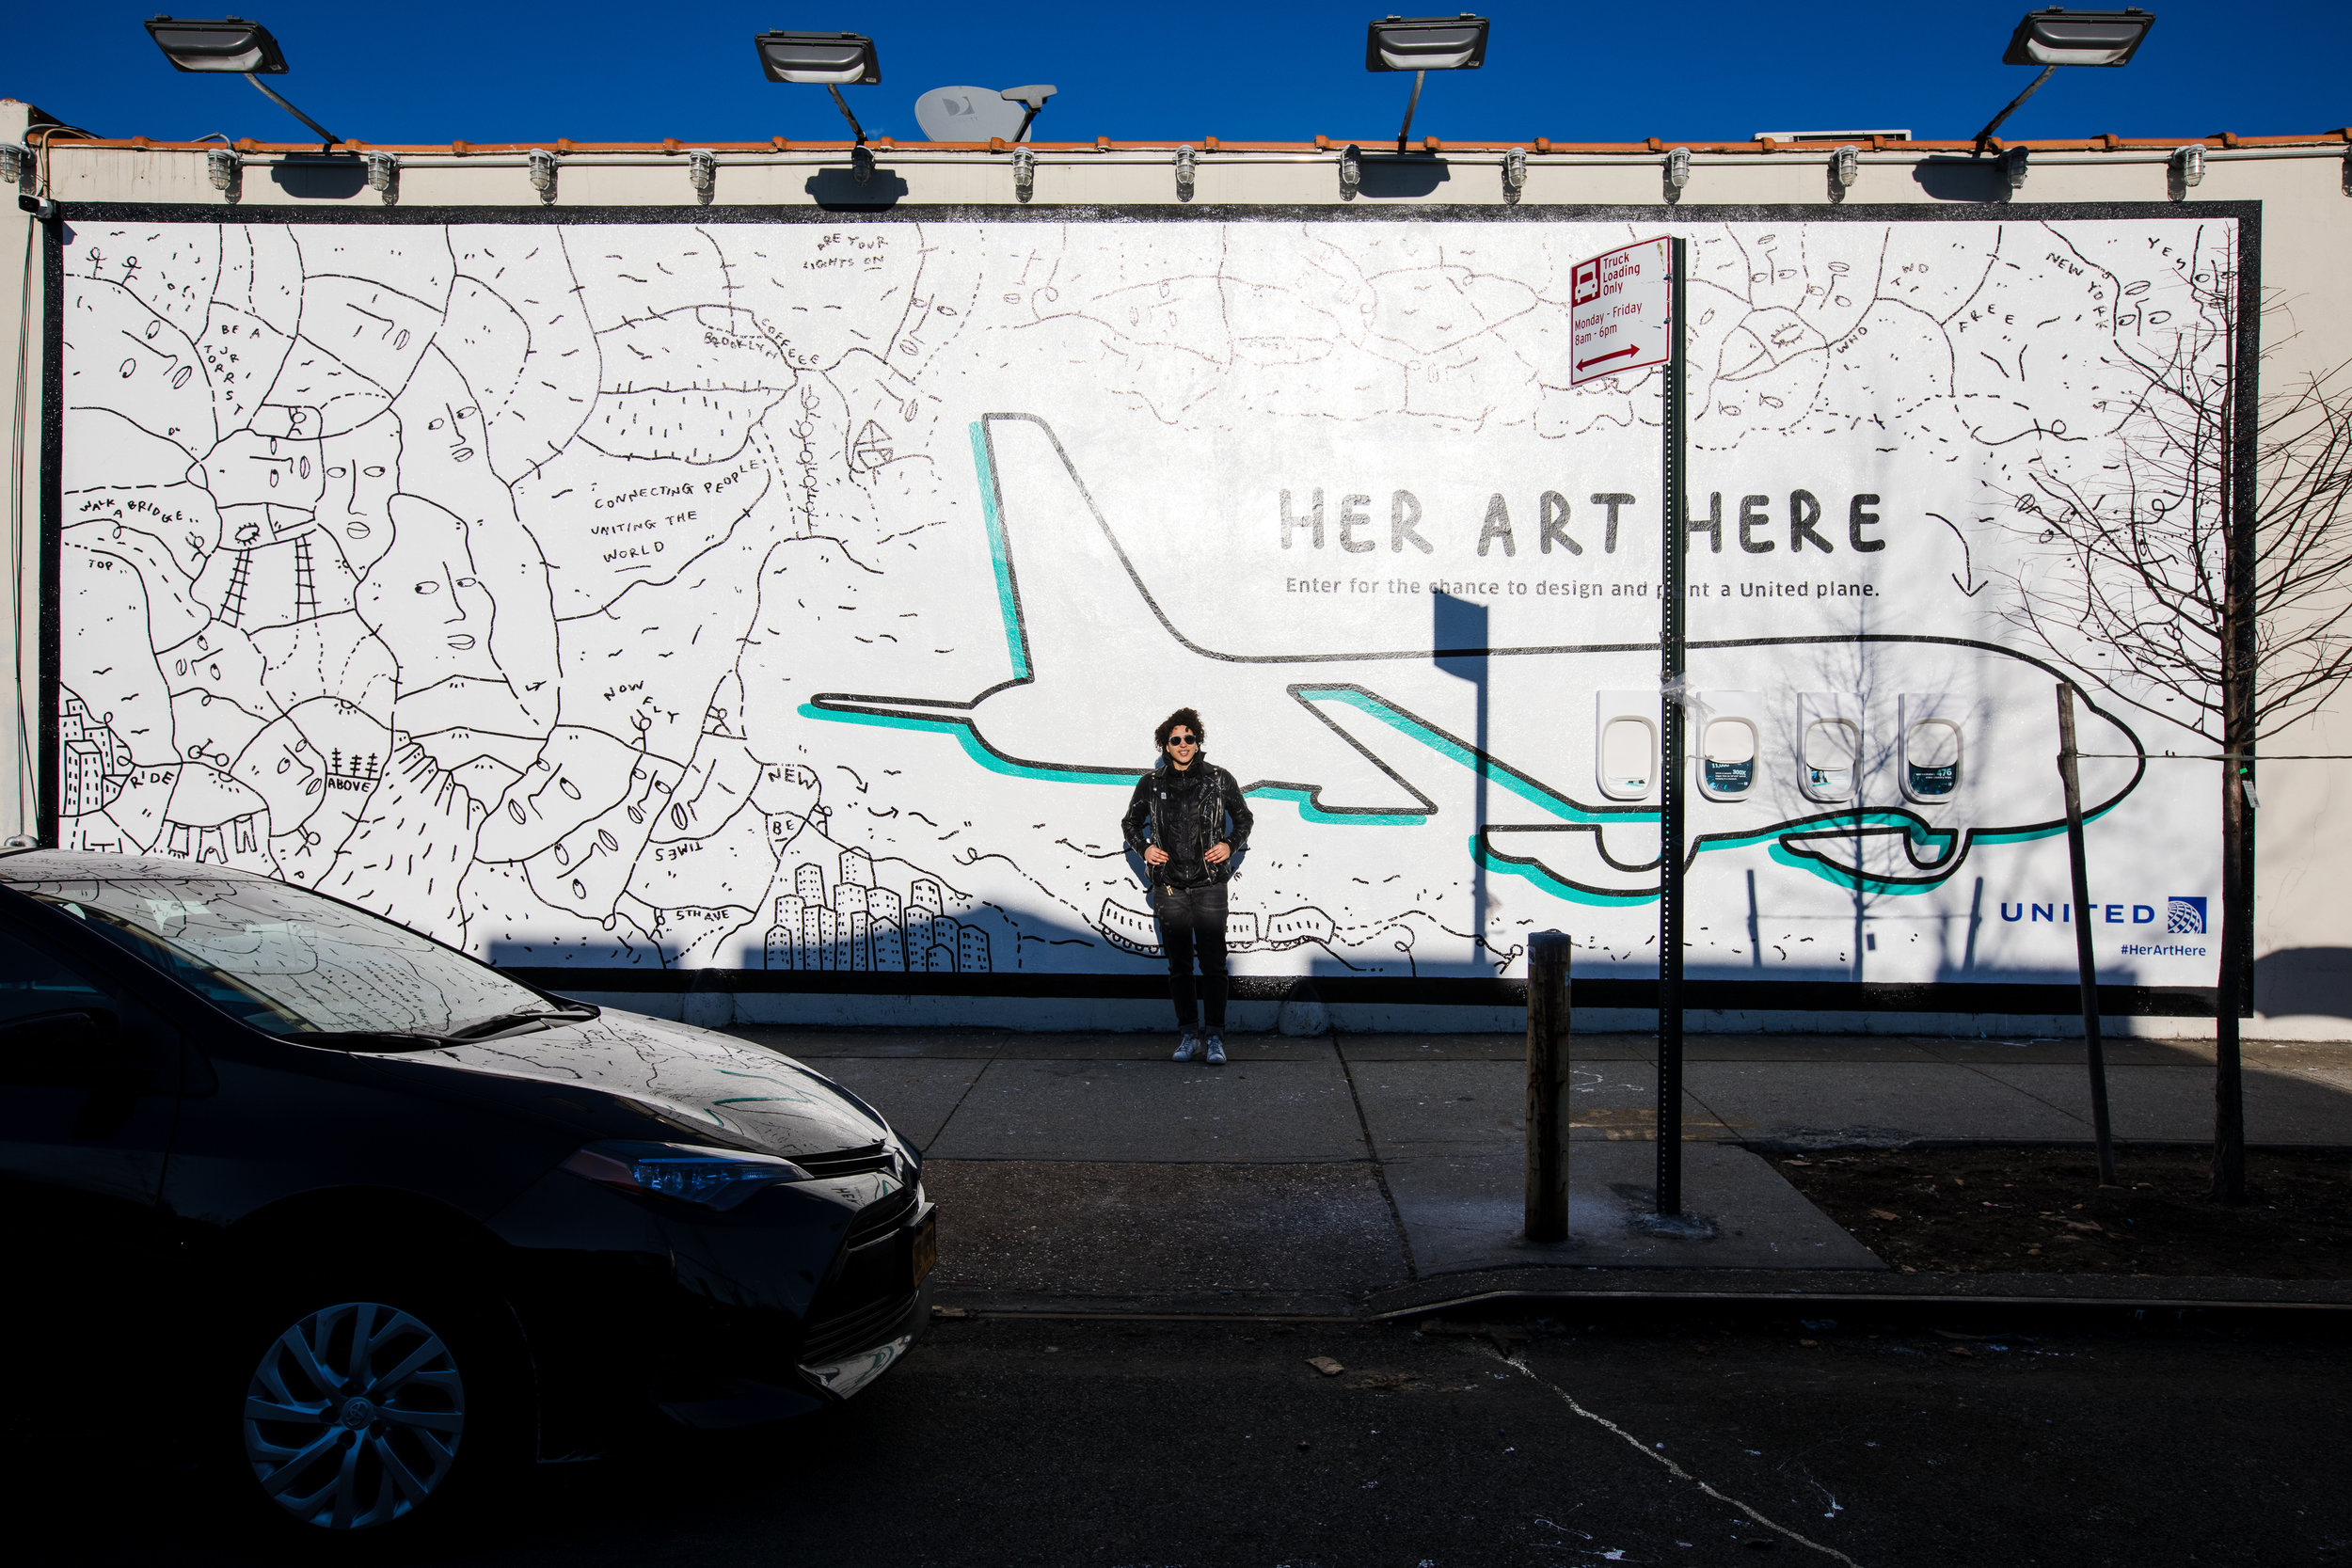 [Her Art Here] Shantell Martin x United Airlines - March 2019 - 38 Norman Ave, Brooklyn, NY